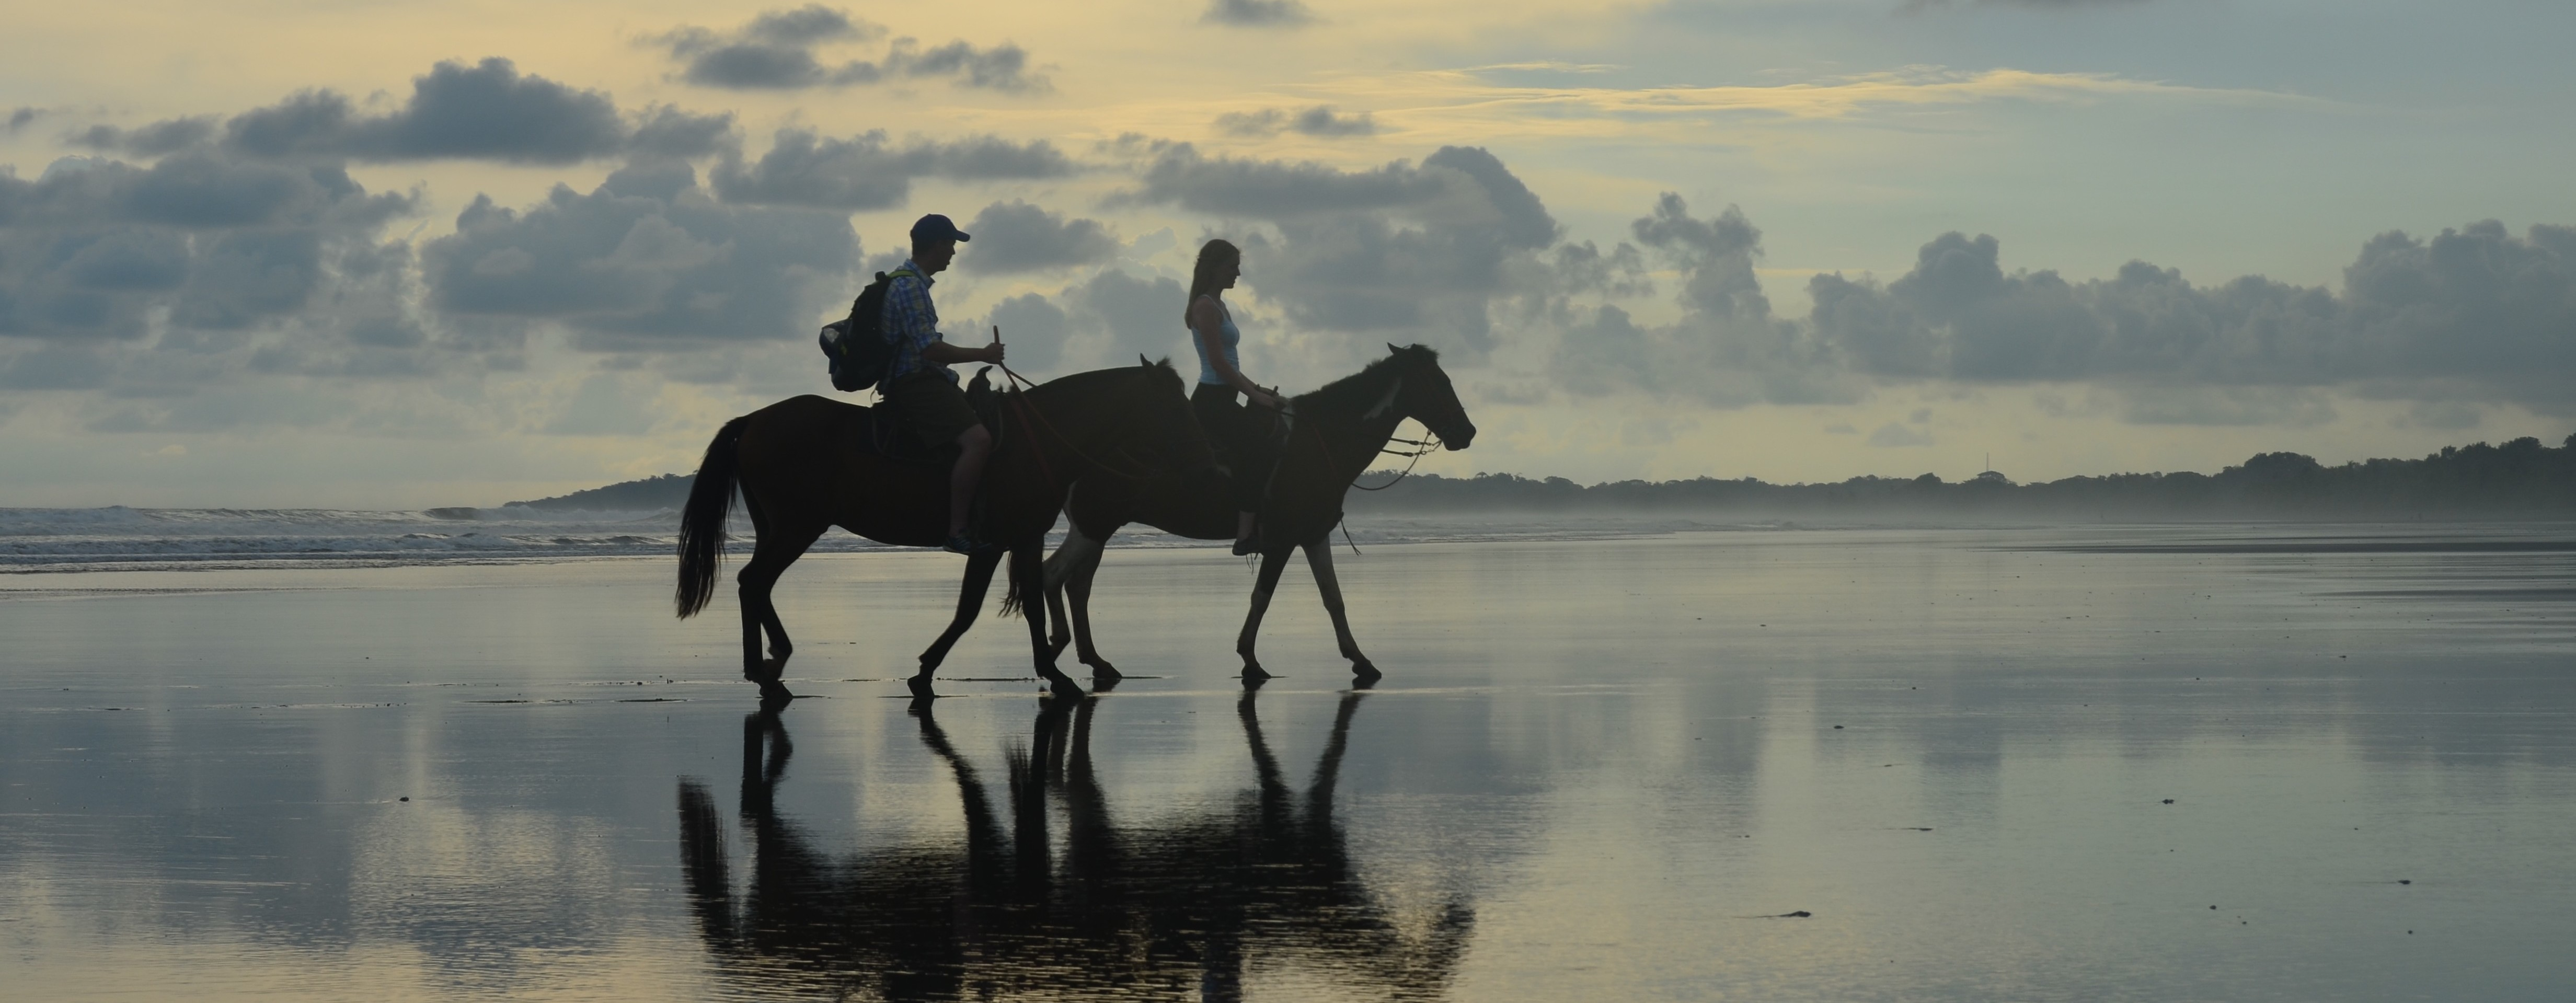 Horseback Riding Manuel Antonio - the riding adventure sunset